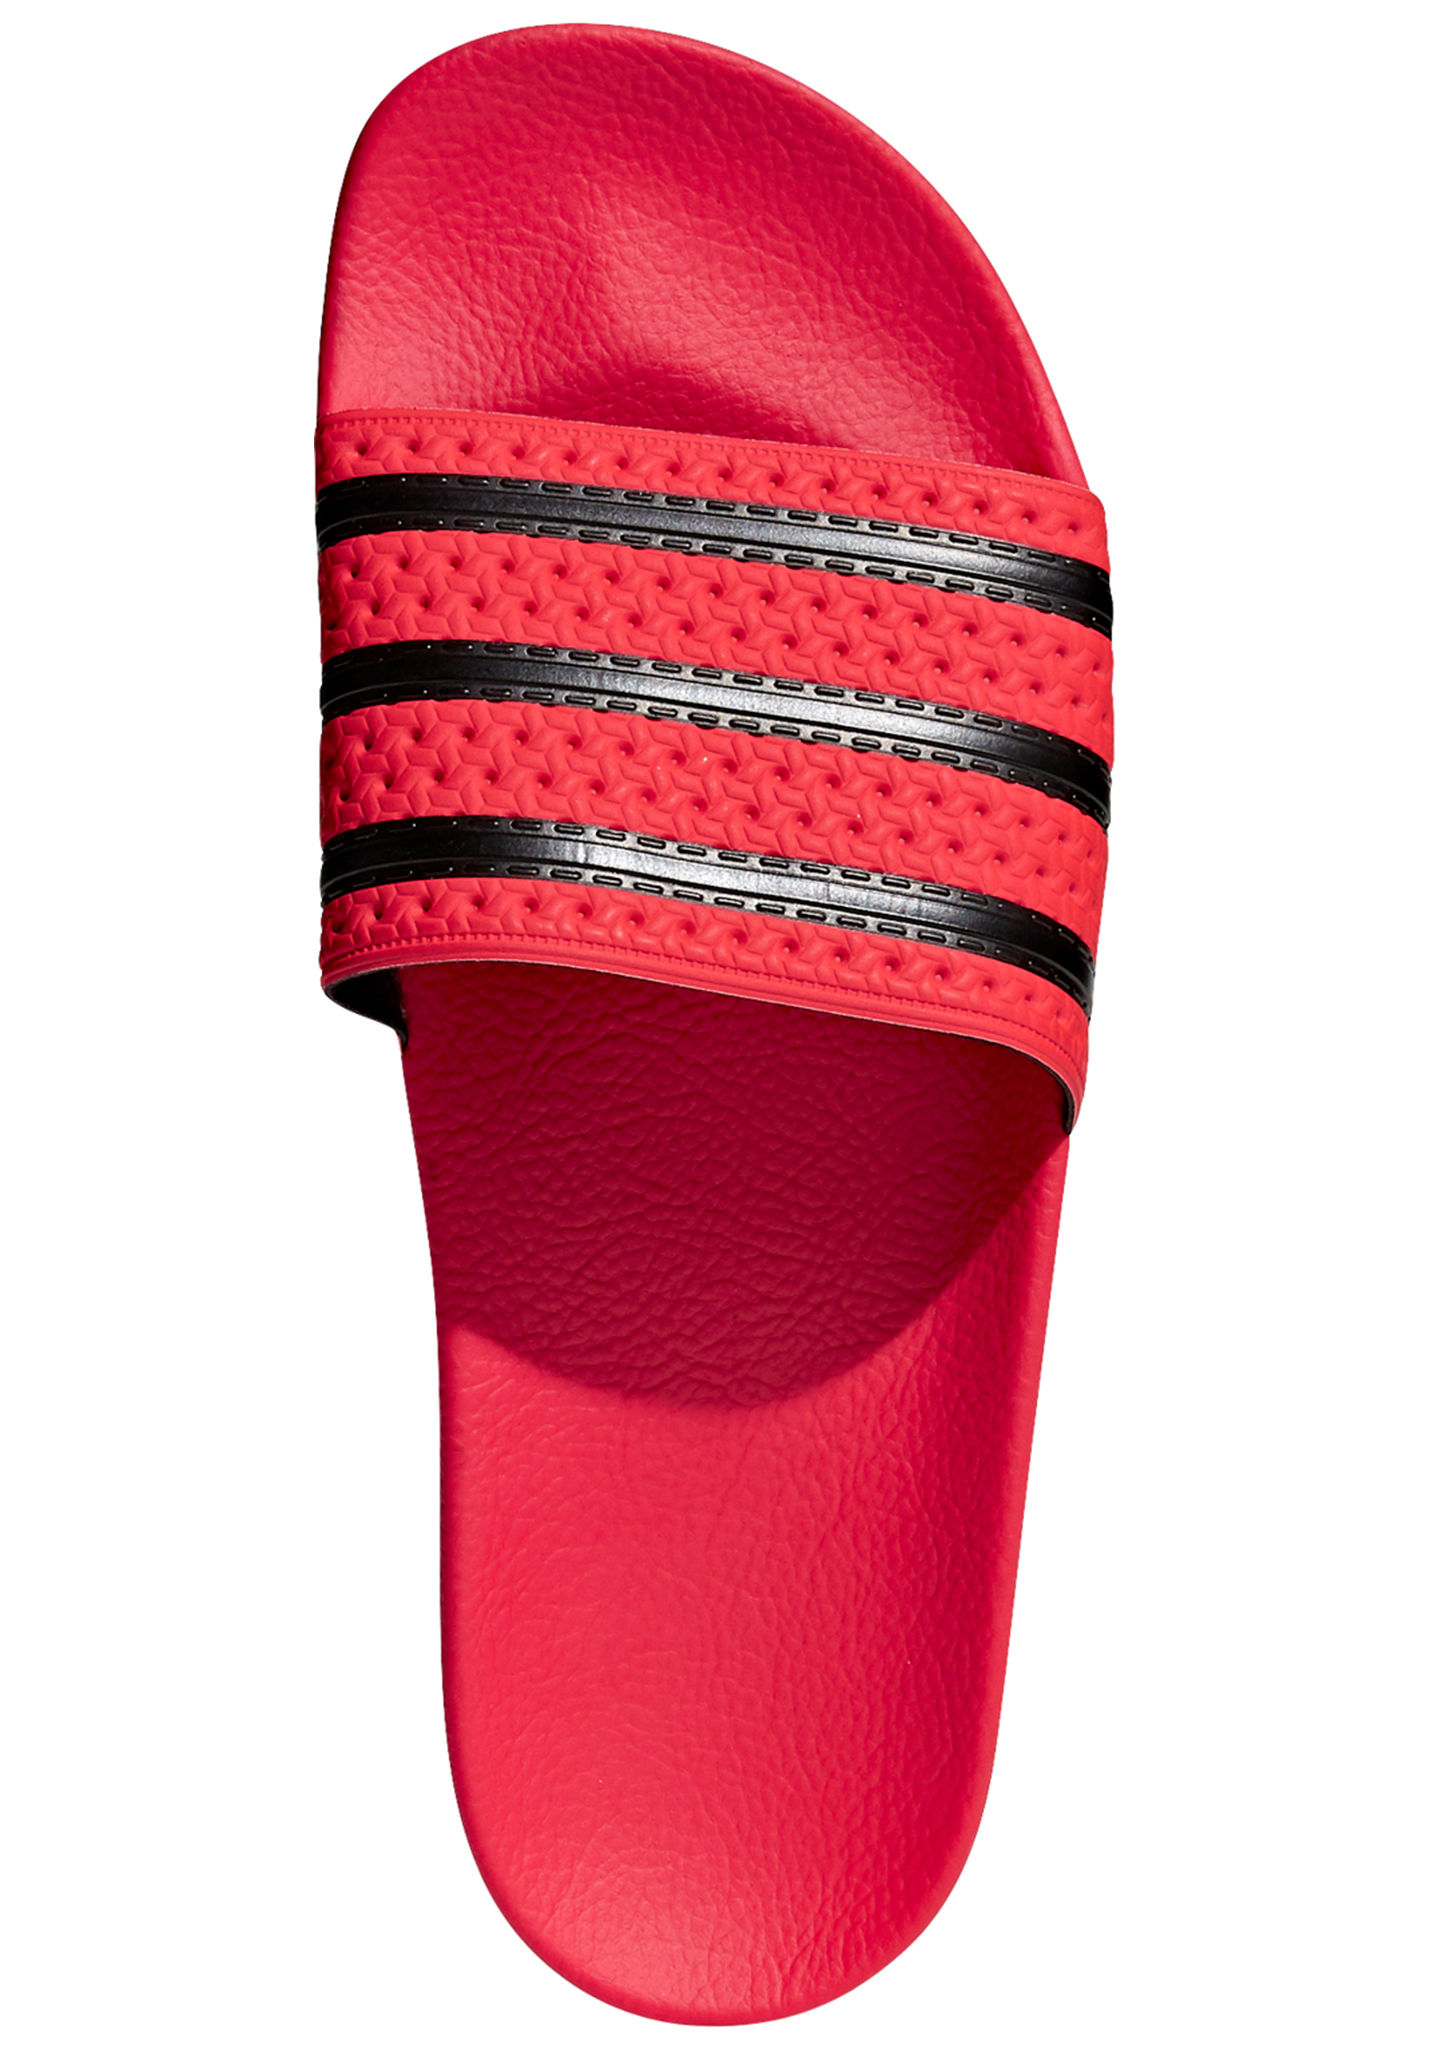 f9ec663bc ADIDAS ORIGINALS Adilette - Sandals for Men - Red - Planet Sports